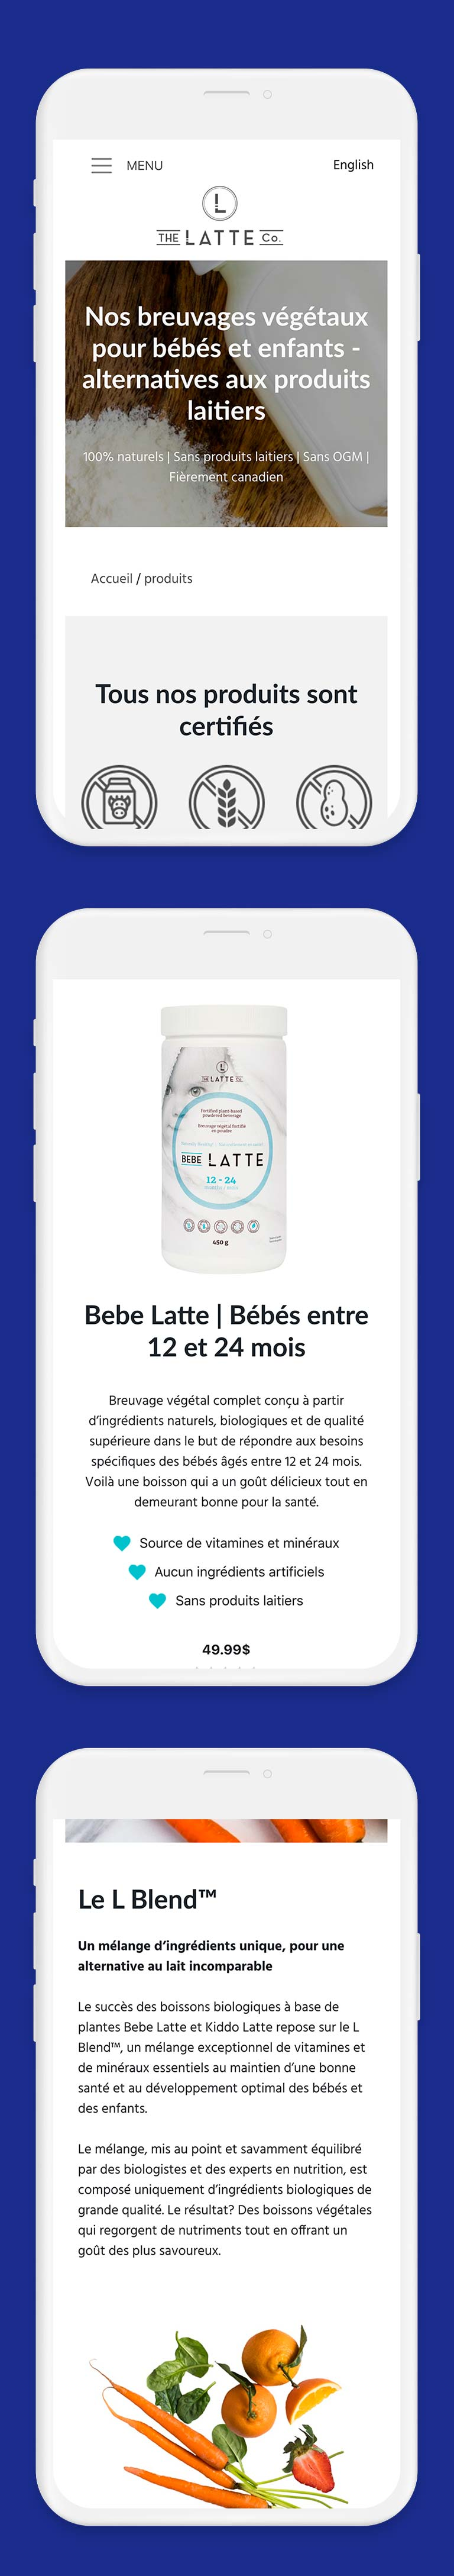 Montage responsive mobile The Latte Co.